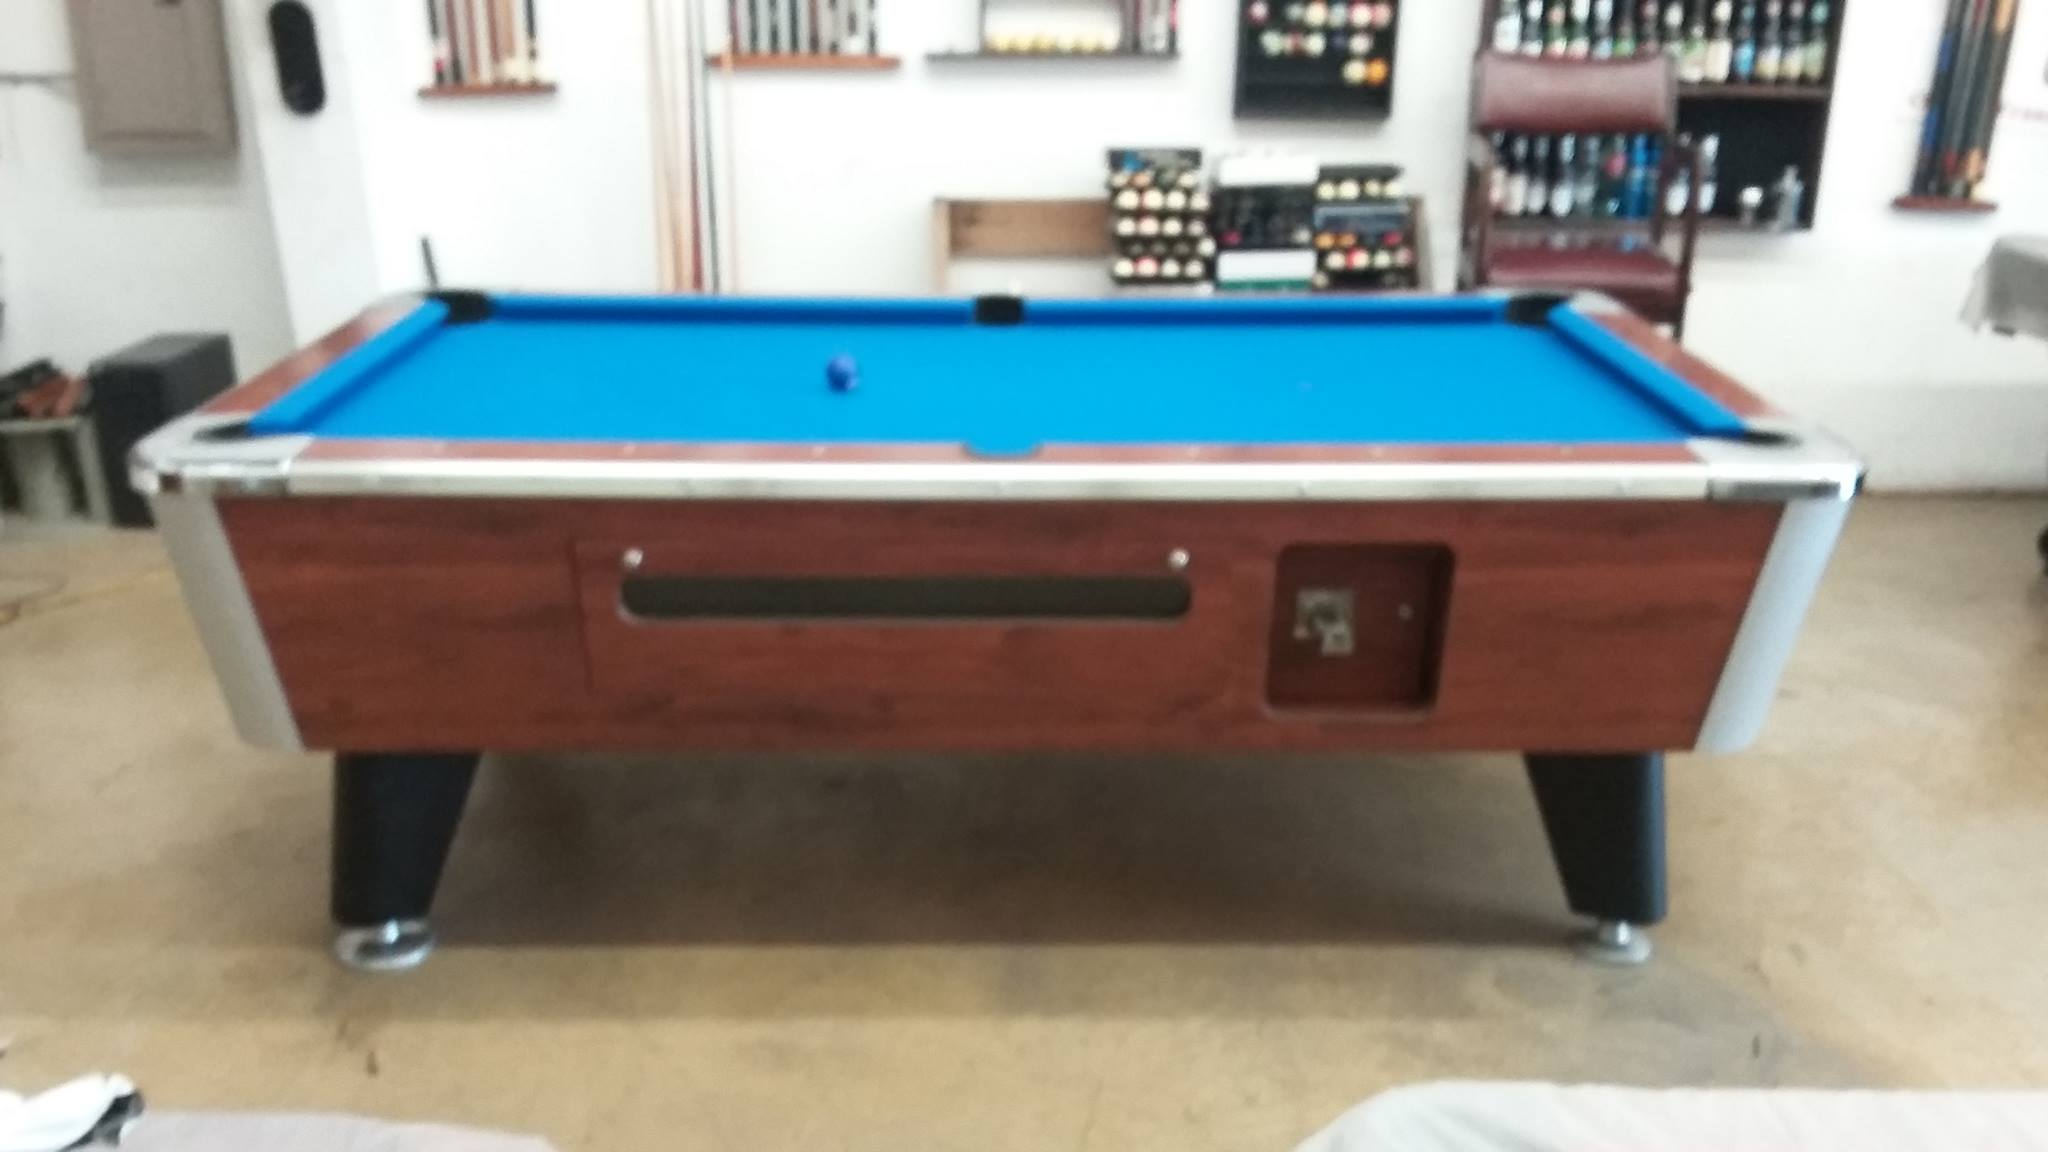 SOMAR BILLIARDS Purchasing A Pool Table - How to move a pool table upstairs